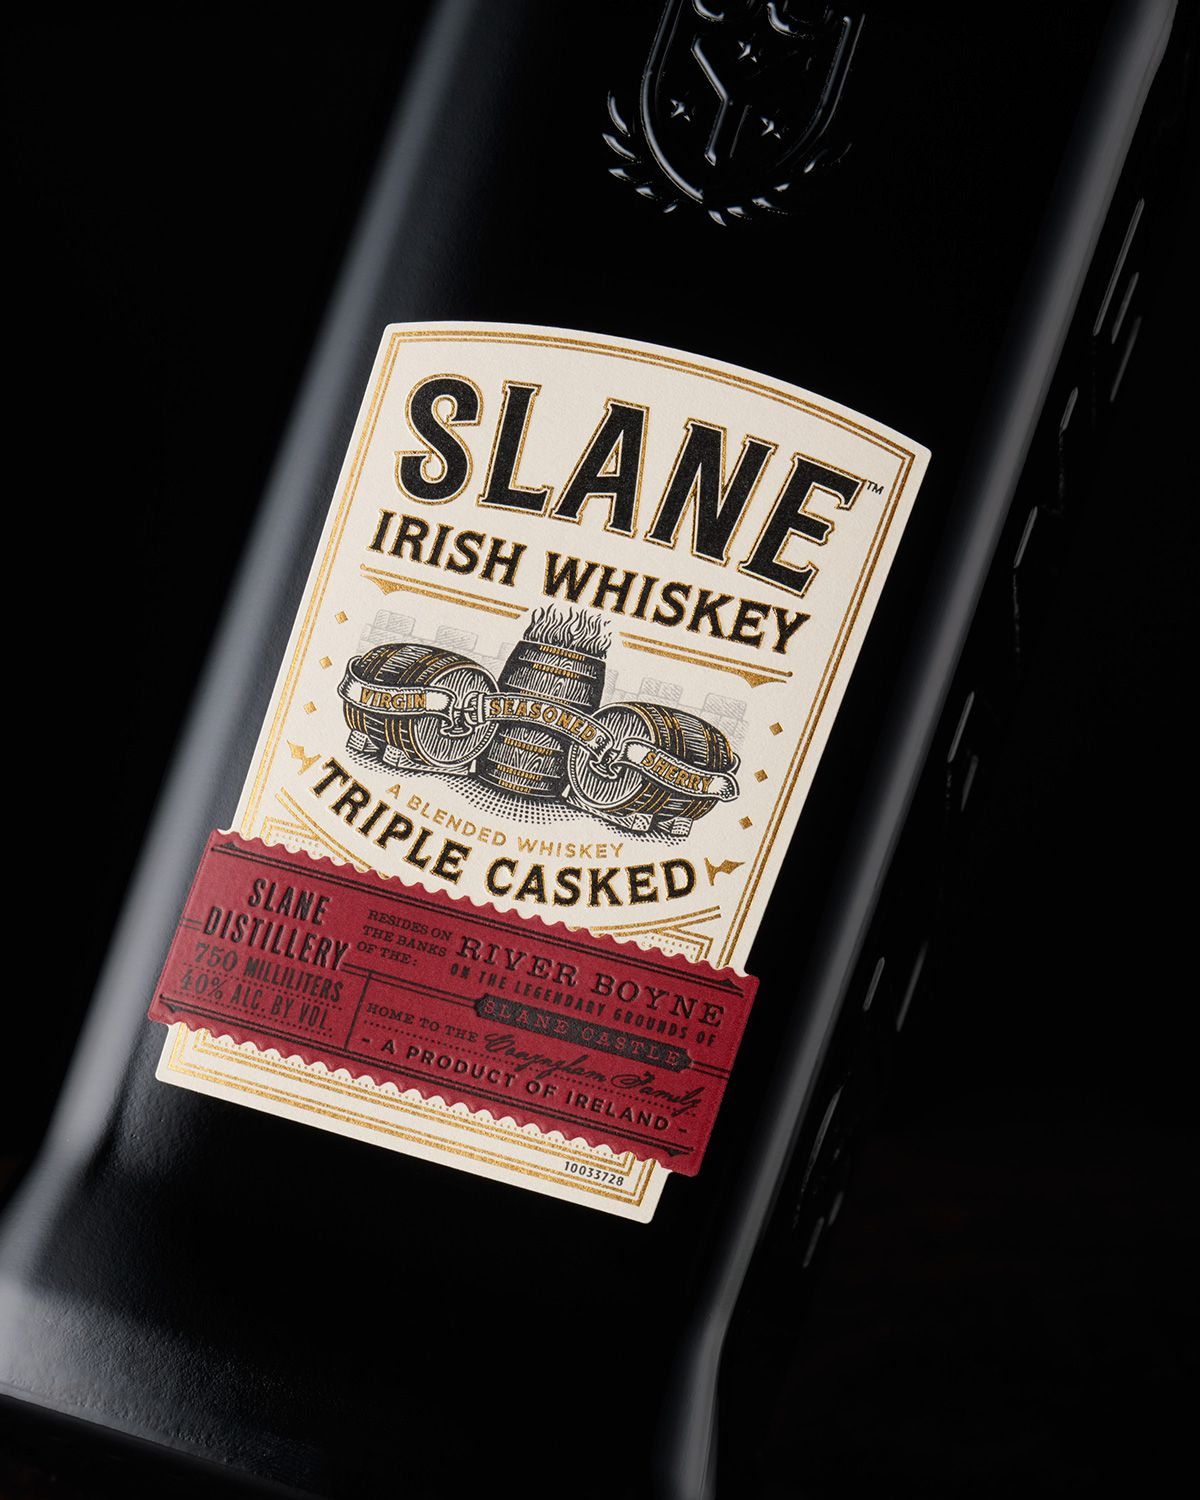 Check Out This Behance Project Slane Irish Whiskey Https Www Behance Net Gallery 51240173 Slane Irish Whiskey Irish Whiskey Whiskey Label Whiskey